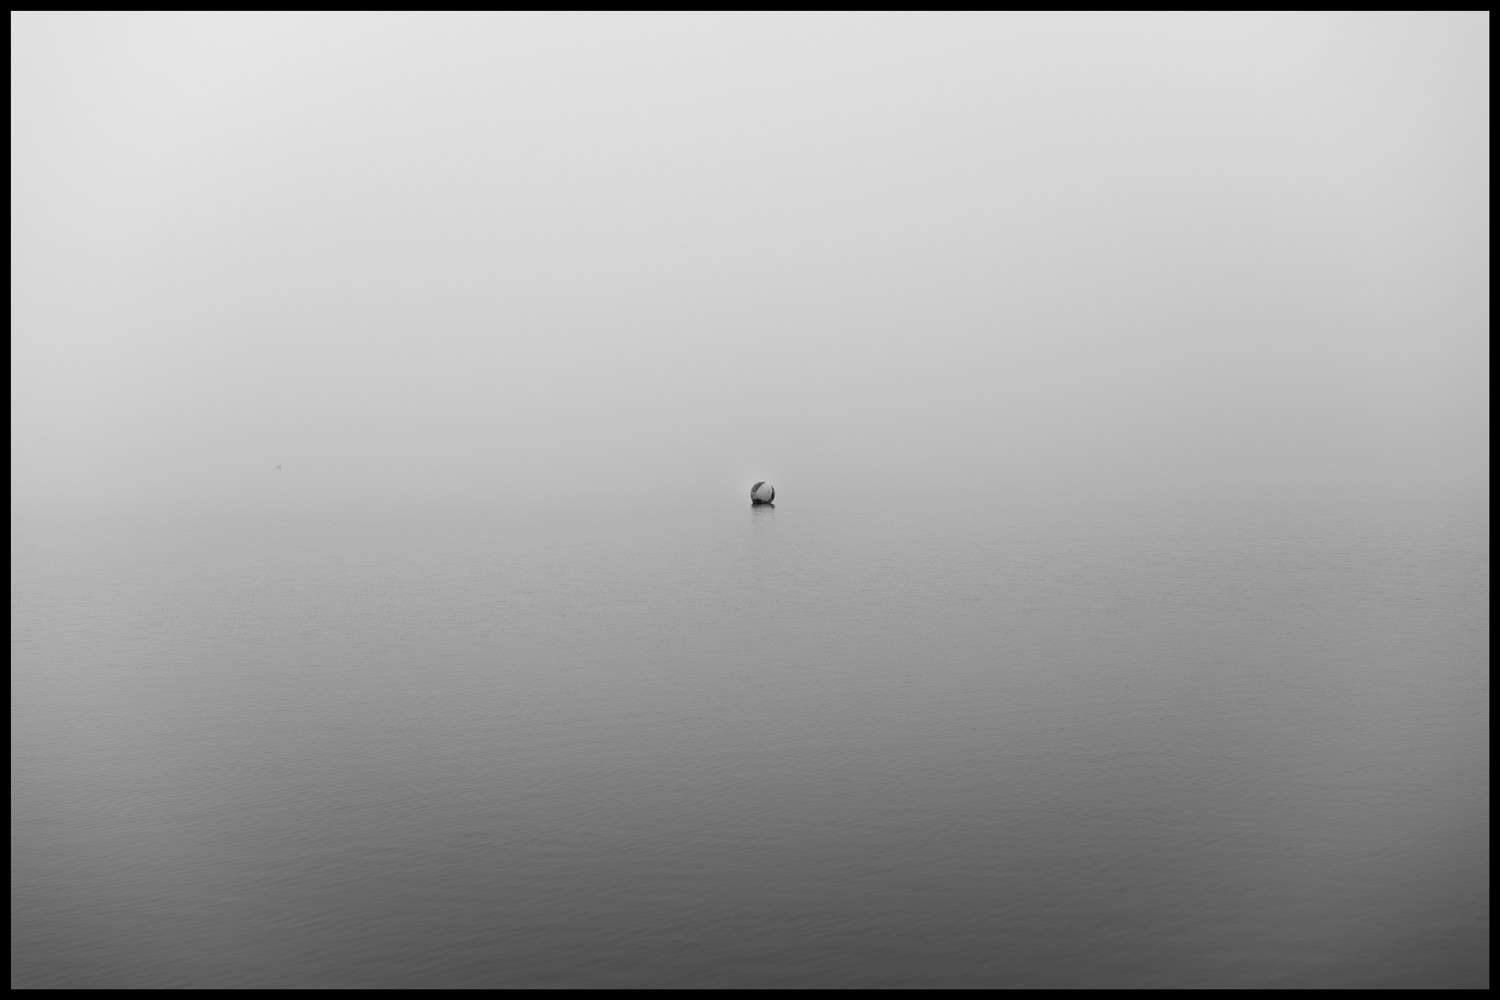 A buoy on the water. The fog makes it hard to see the division between water and sky